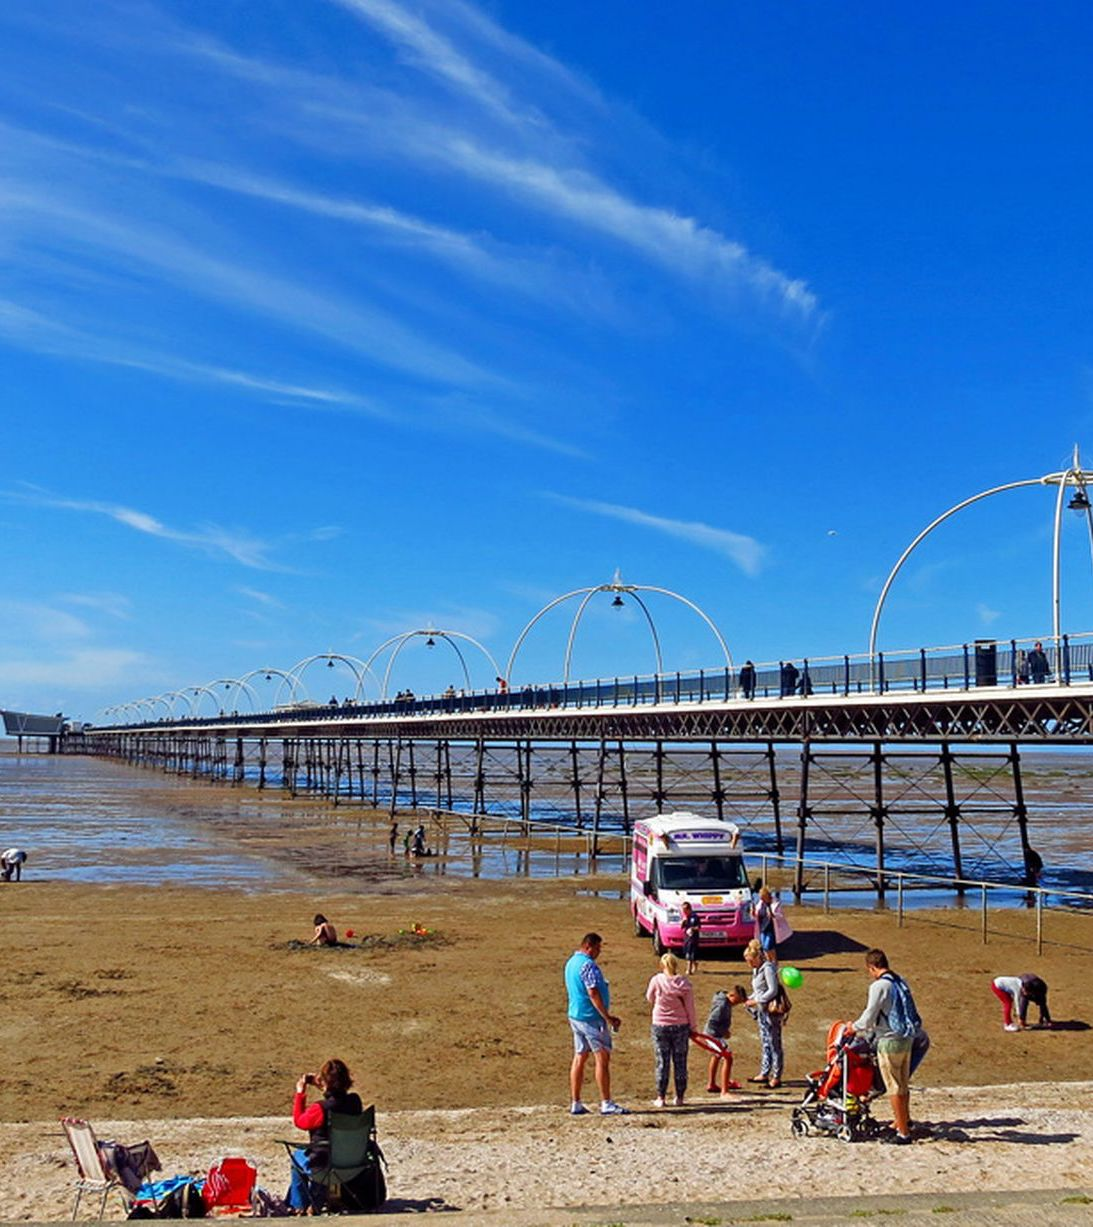 Southport beach and pier